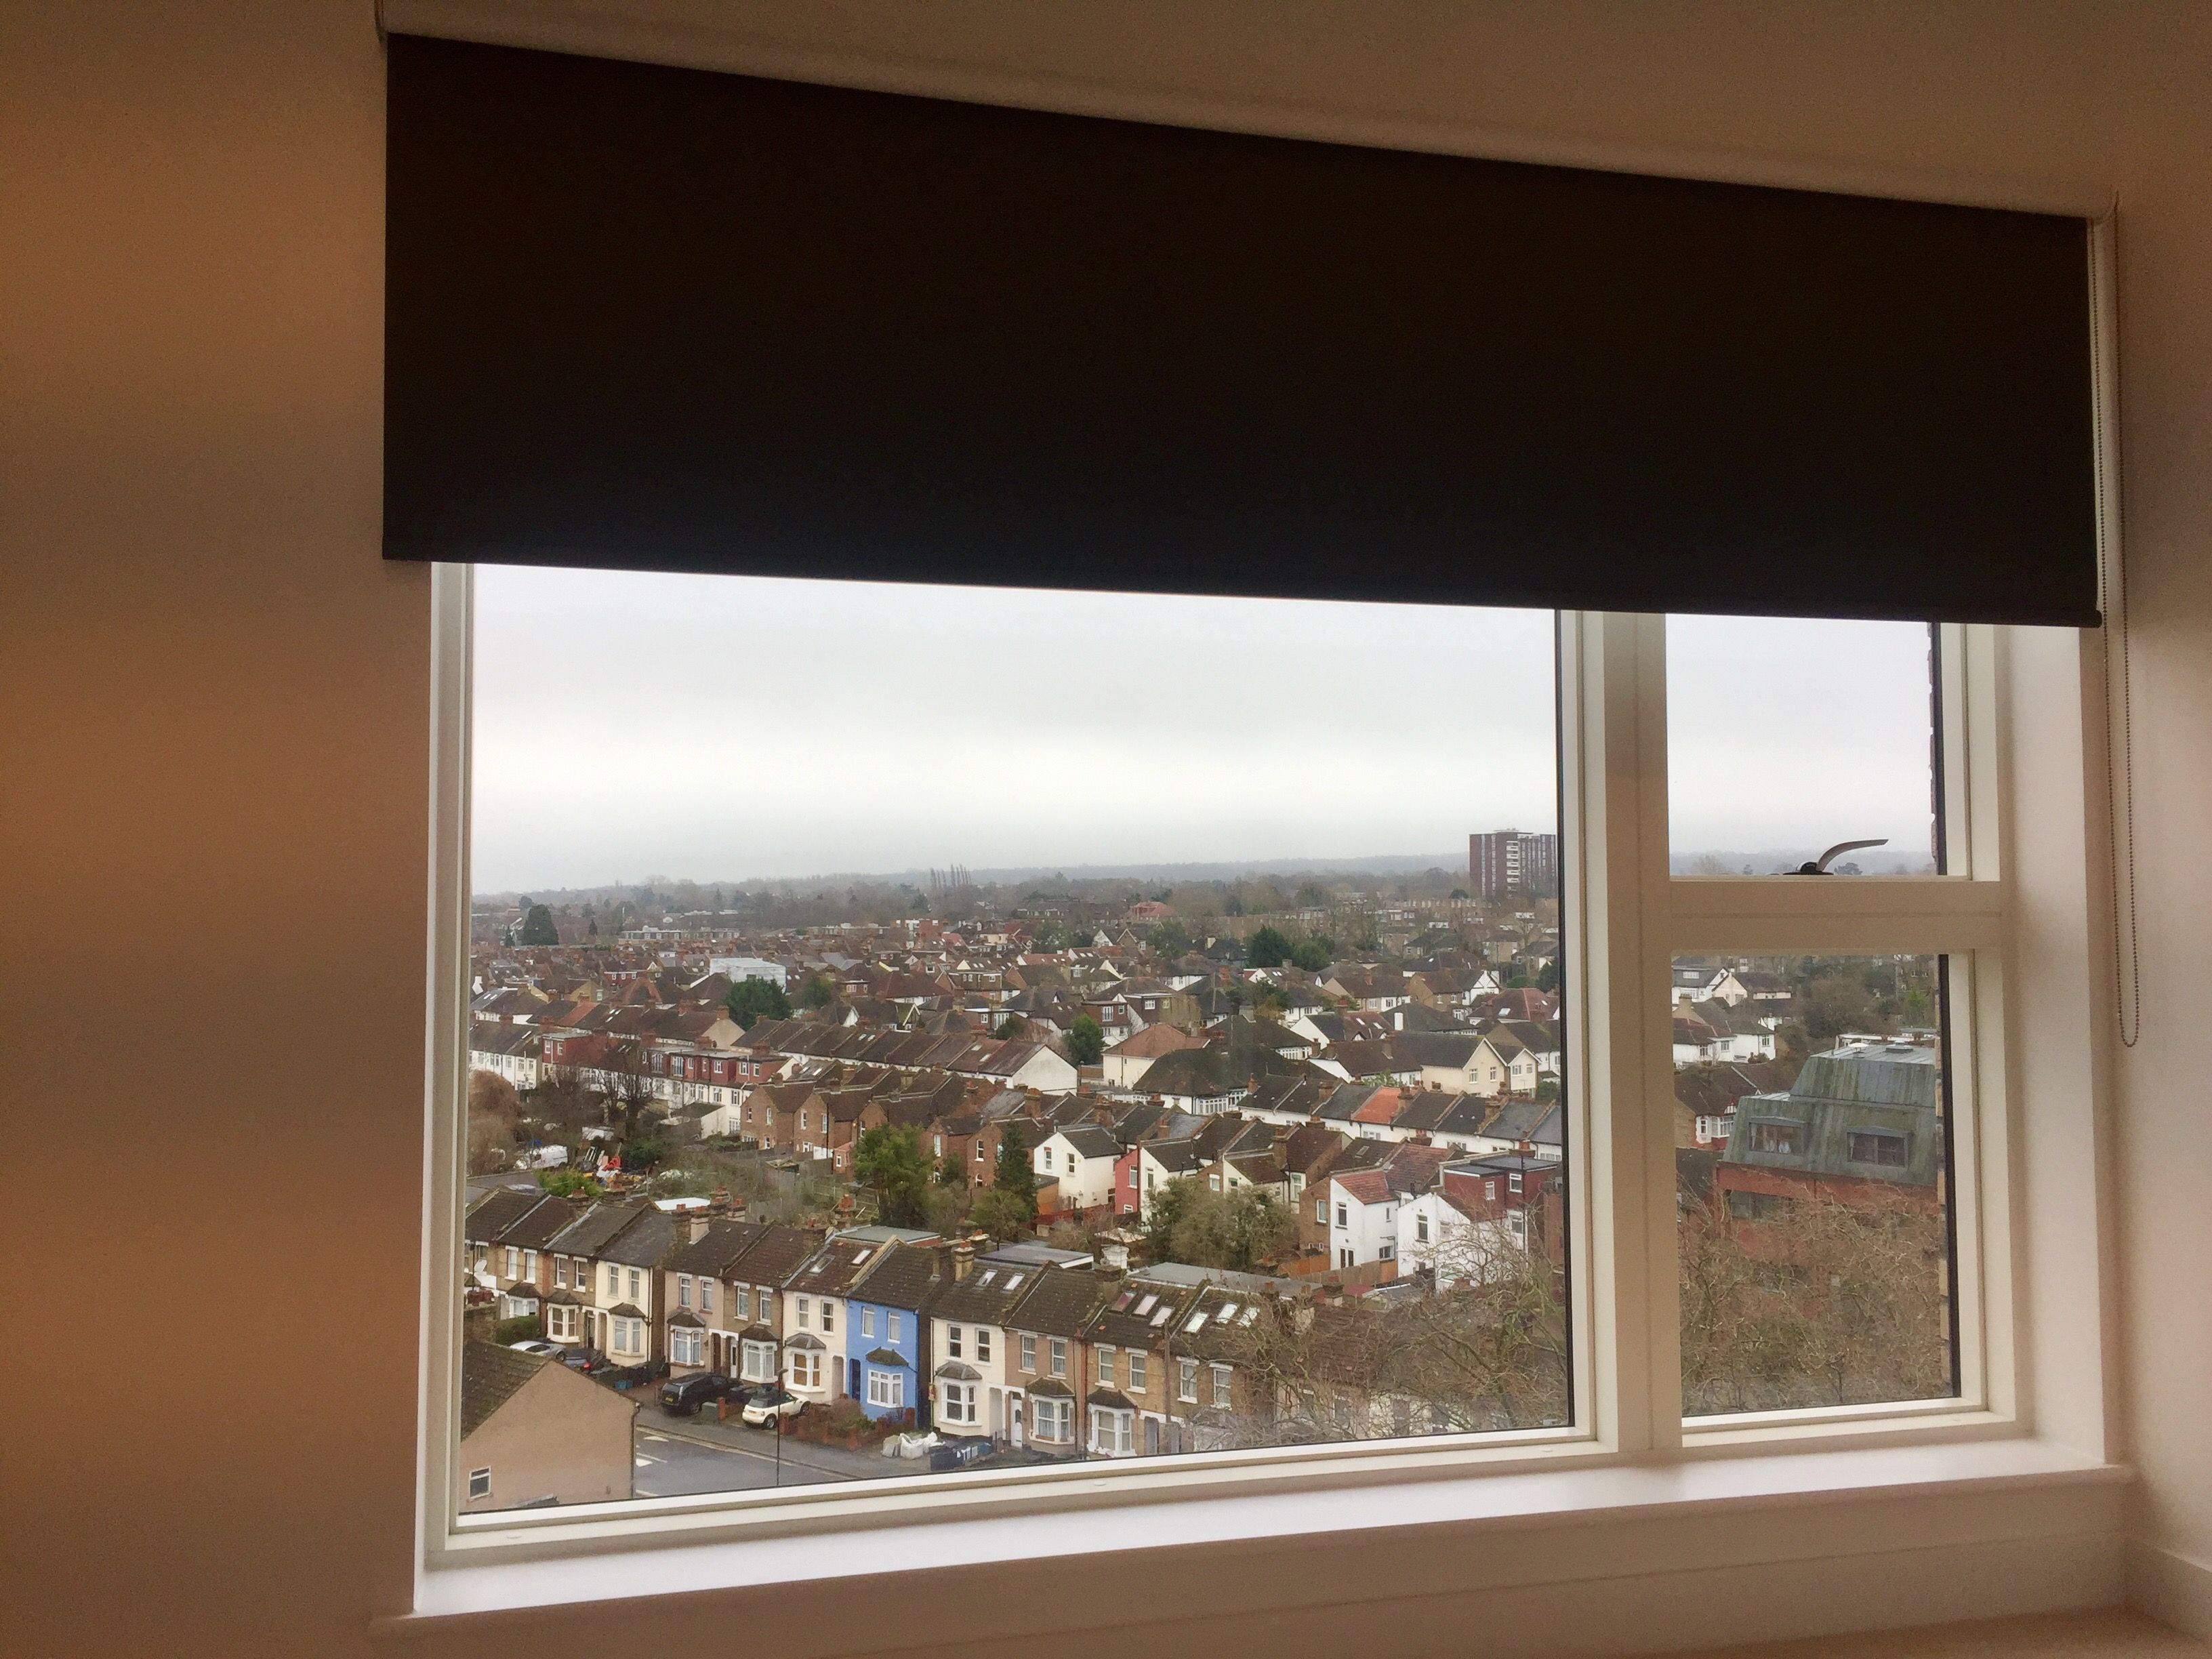 Blackout Roller Blind Fitted To Bedroom Window Blind Fitted